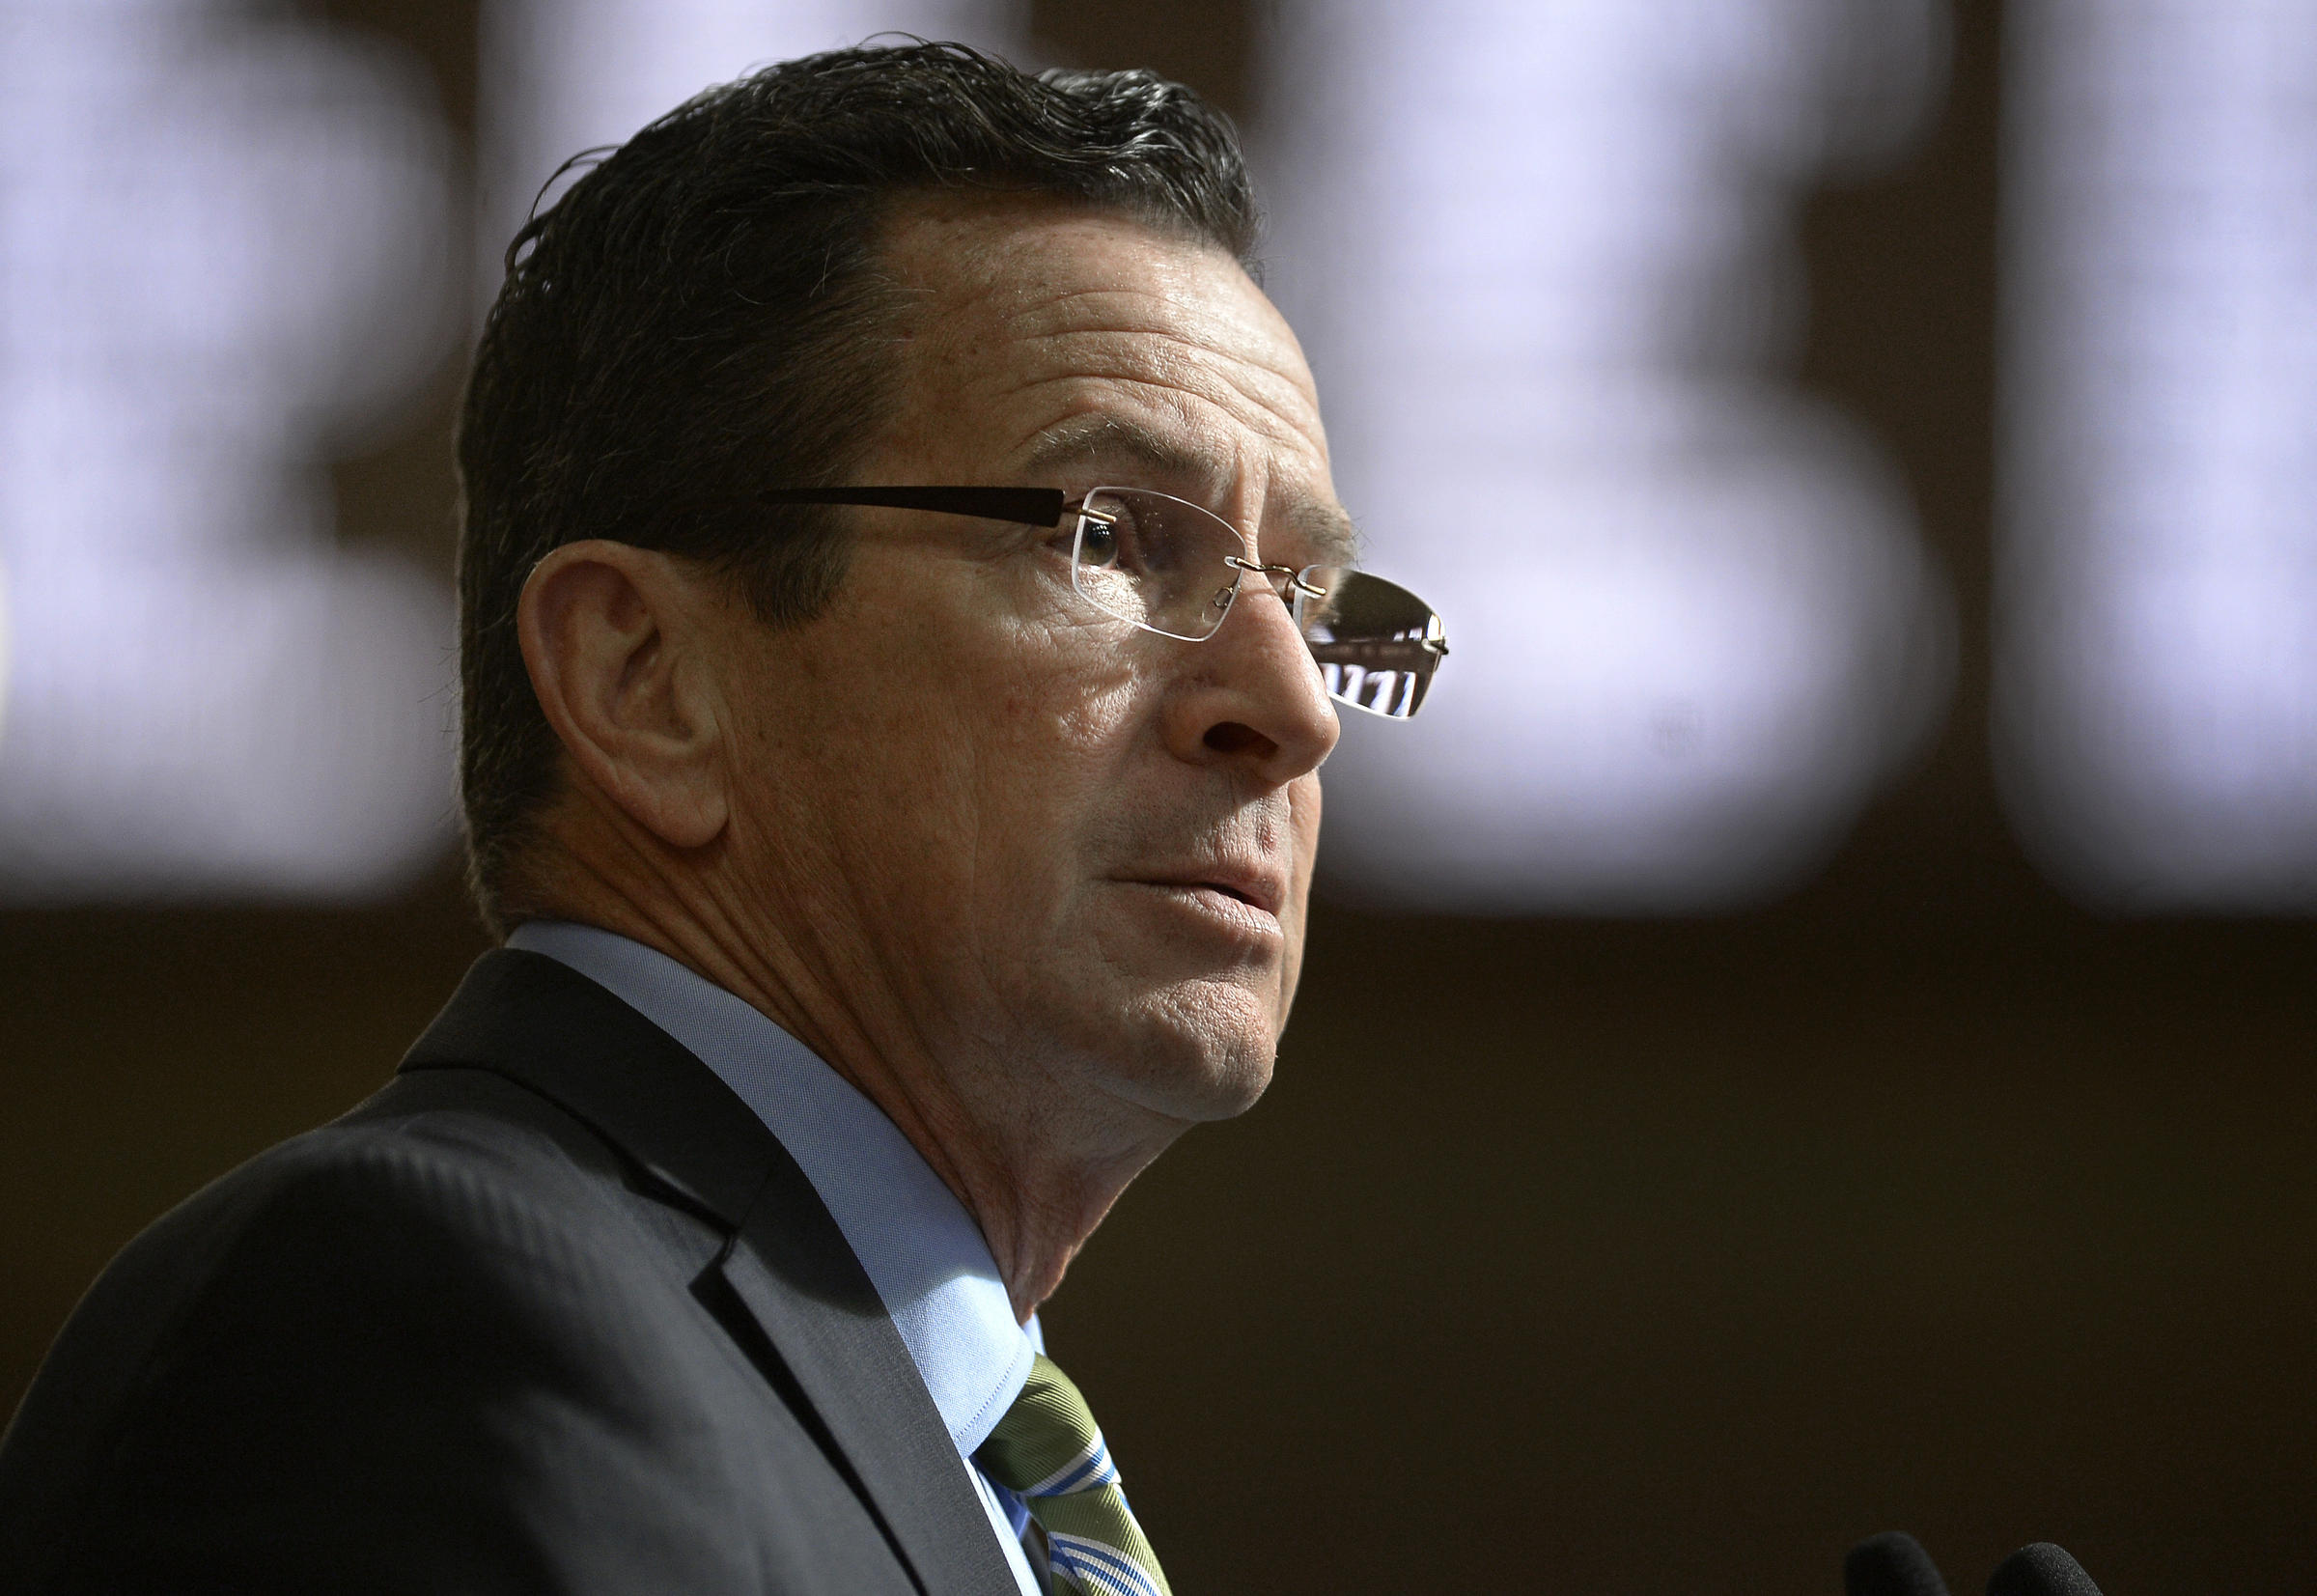 Malloy Strikes Union Deal, But GOP Pushes For More Concessions